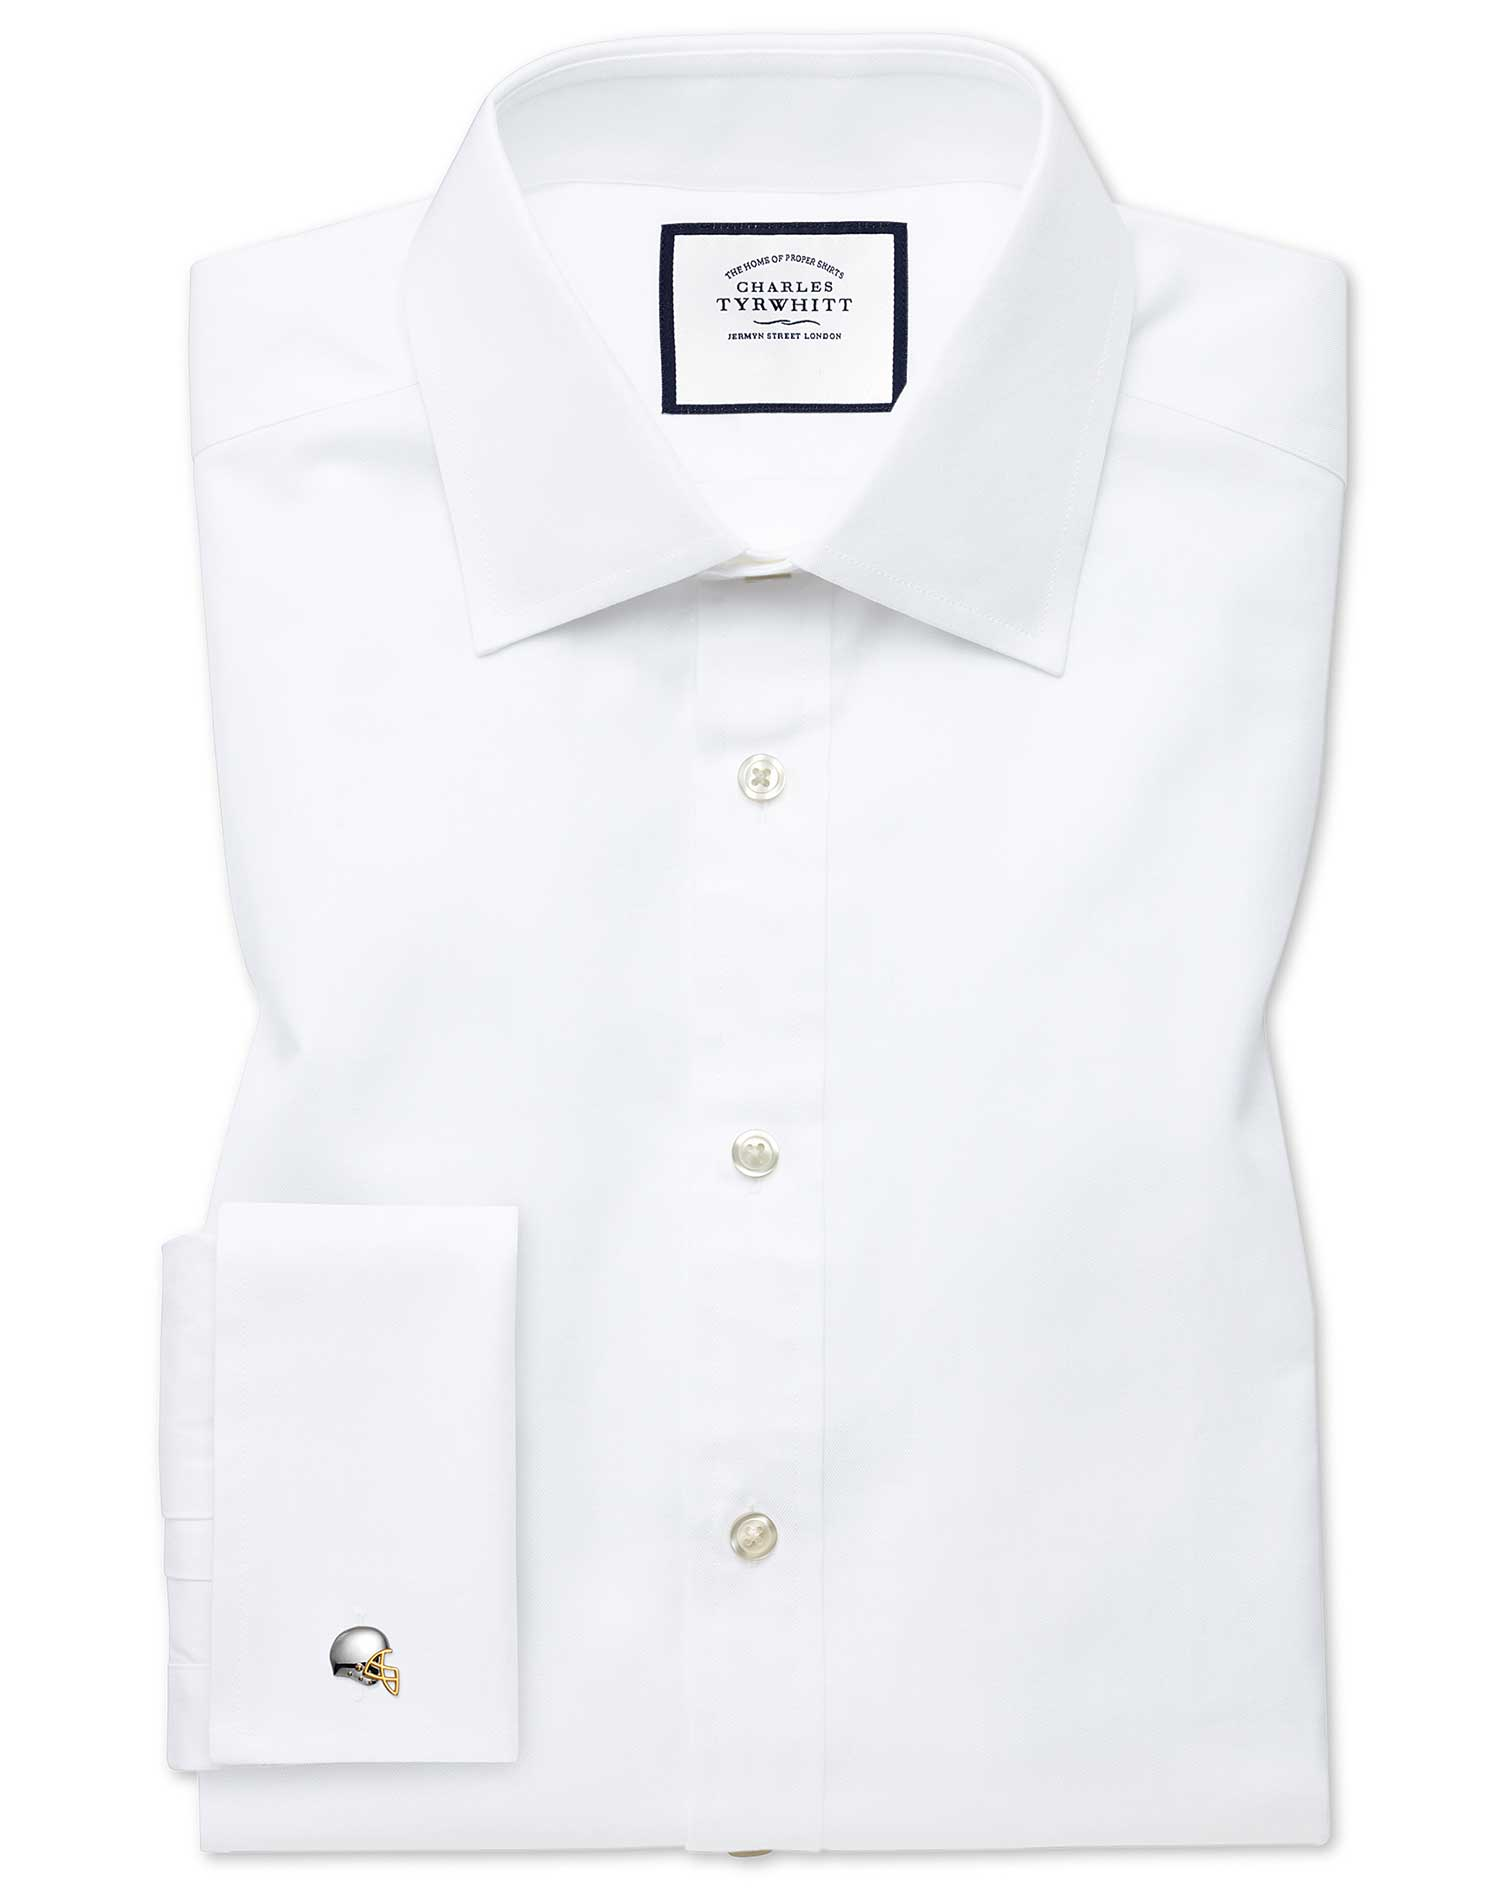 Extra Slim Fit Fine Herringbone White Cotton Formal Shirt Double Cuff Size 17/35 by Charles Tyrwhitt